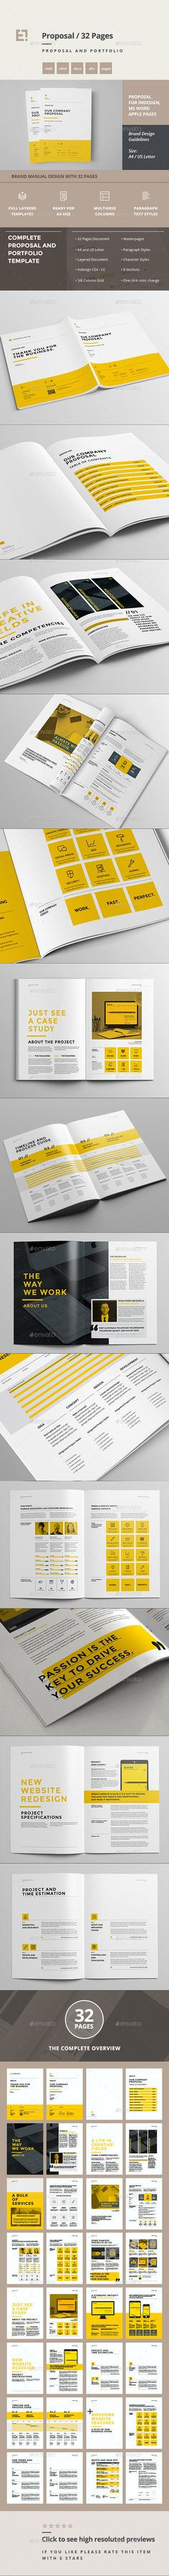 Minimal and Professional Proposal Brochure template for creative businesses, created in Adobe InDesign, Microsoft Word and Apple Pages in International DIN A4 and US Letter format